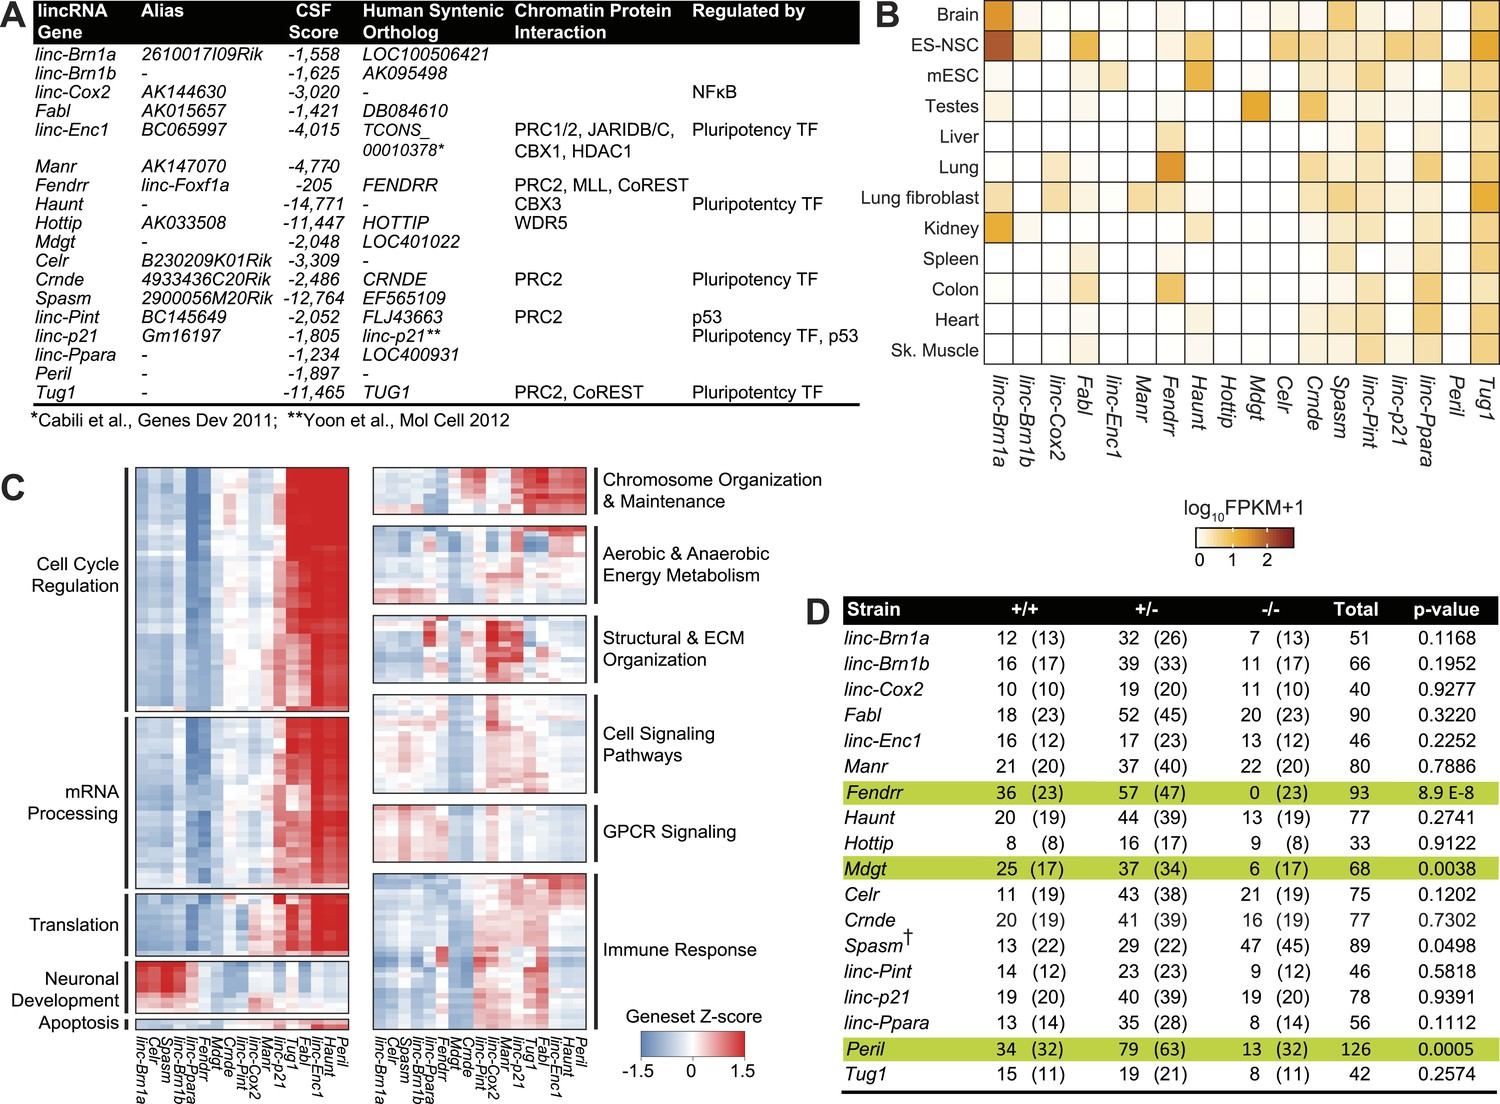 Multiple knockout mouse models reveal lincRNAs are required